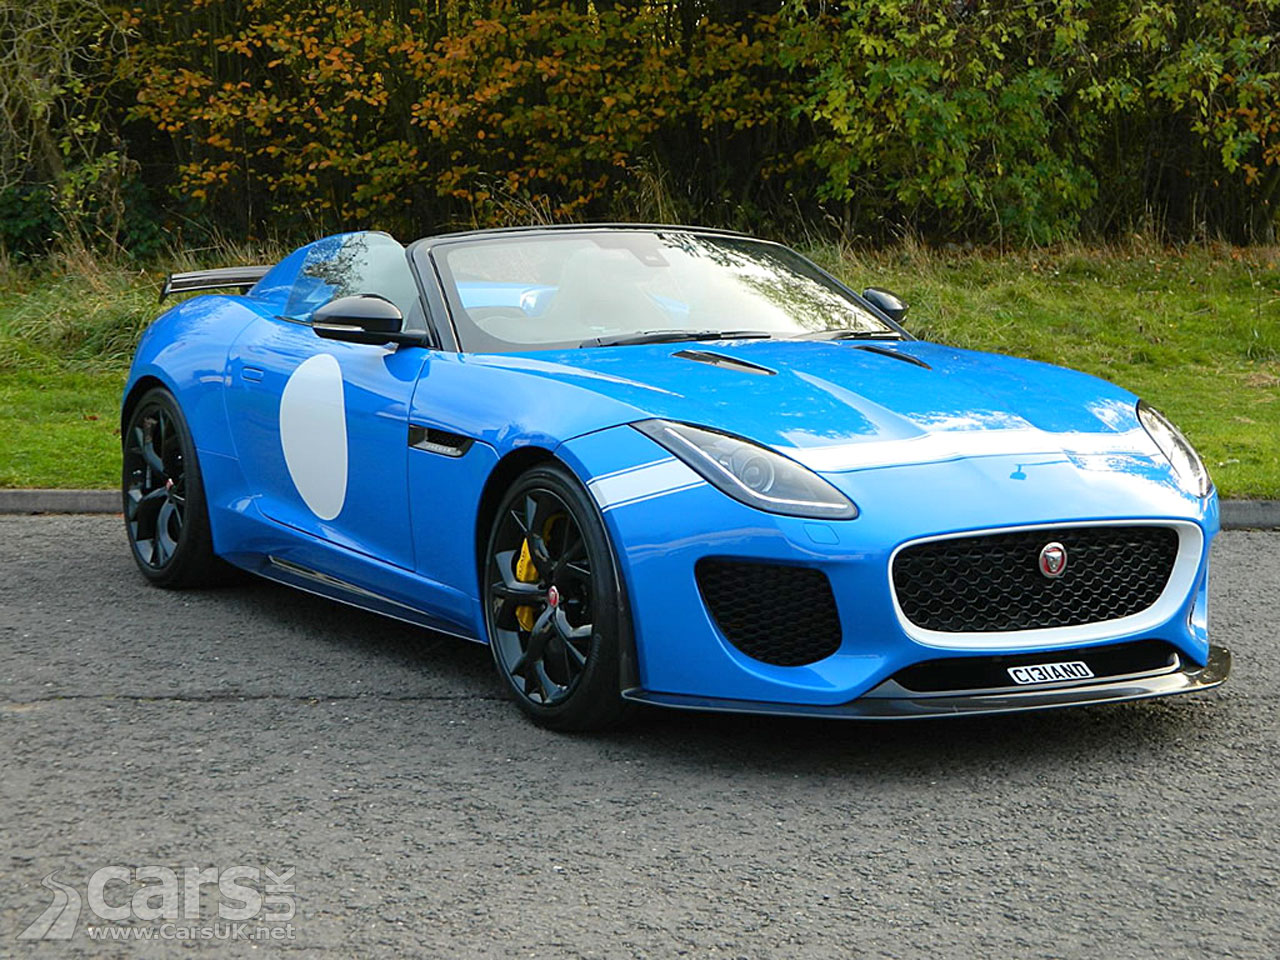 39 new 39 jaguar f type project 7 up for sale at a volvo dealer in scotland cars uk. Black Bedroom Furniture Sets. Home Design Ideas